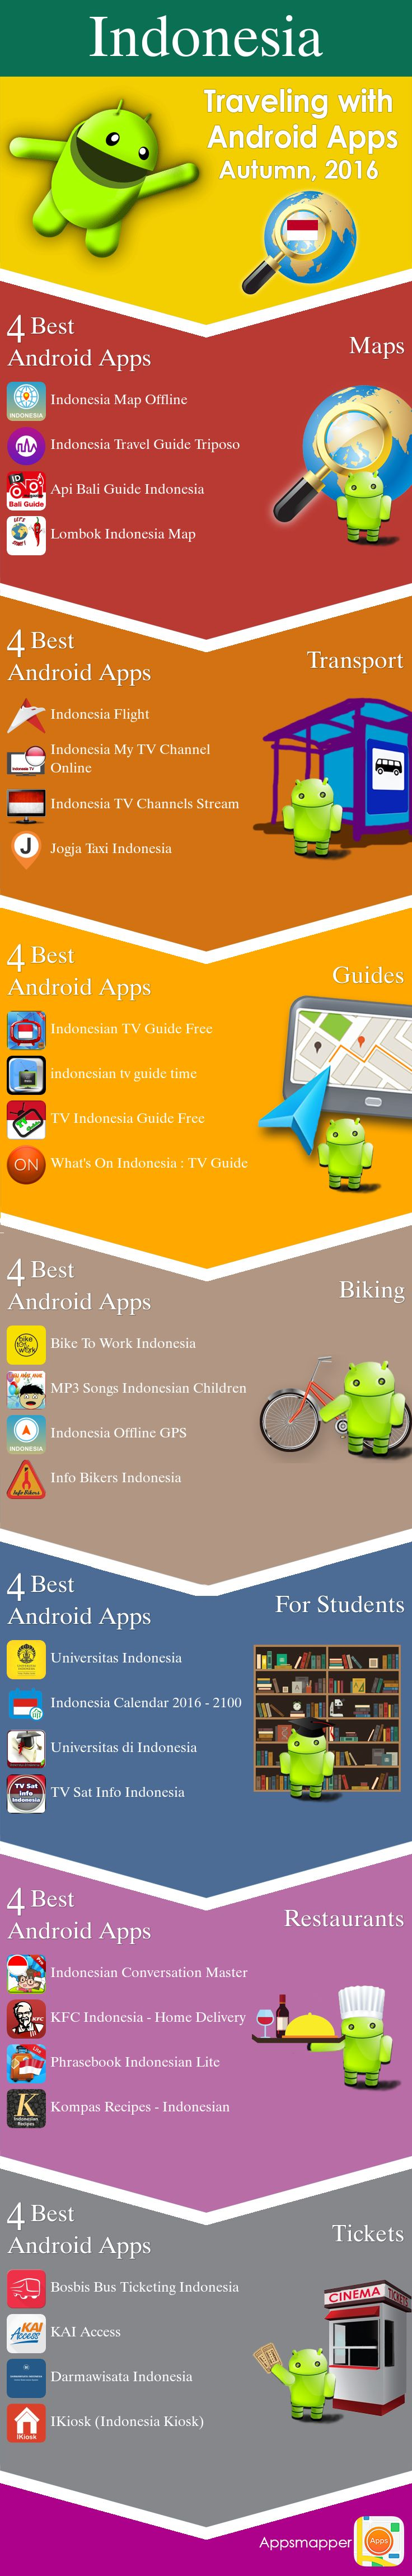 Indonesia Android apps: Travel Guides, Maps, Transportation, Biking, Museums, Parking, Sport and apps for Students.